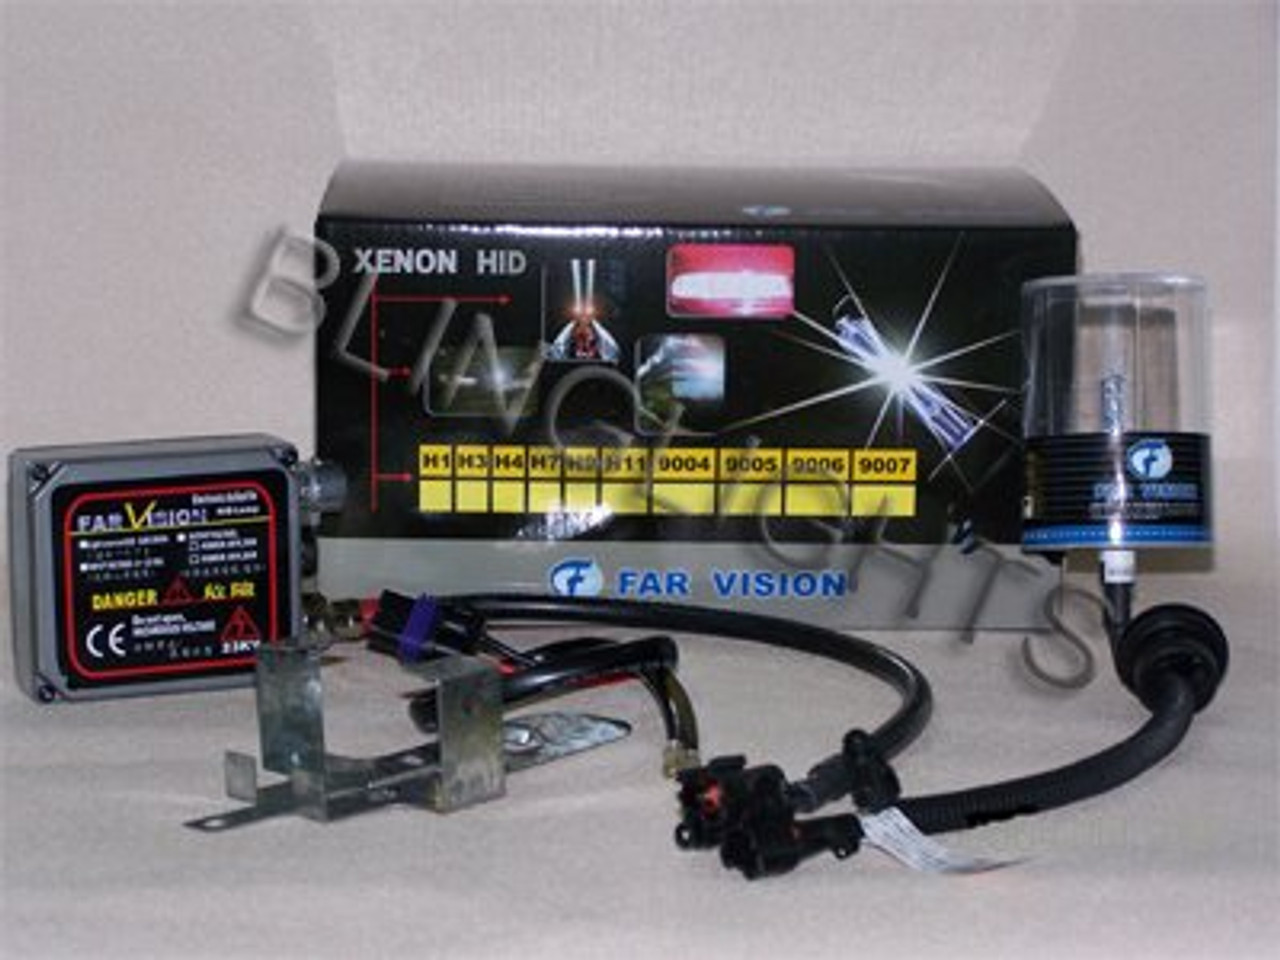 hight resolution of 2004 2005 2006 2007 2008 chrysler crossfire xenon 55 watts hid headlamps headlights conversion kit